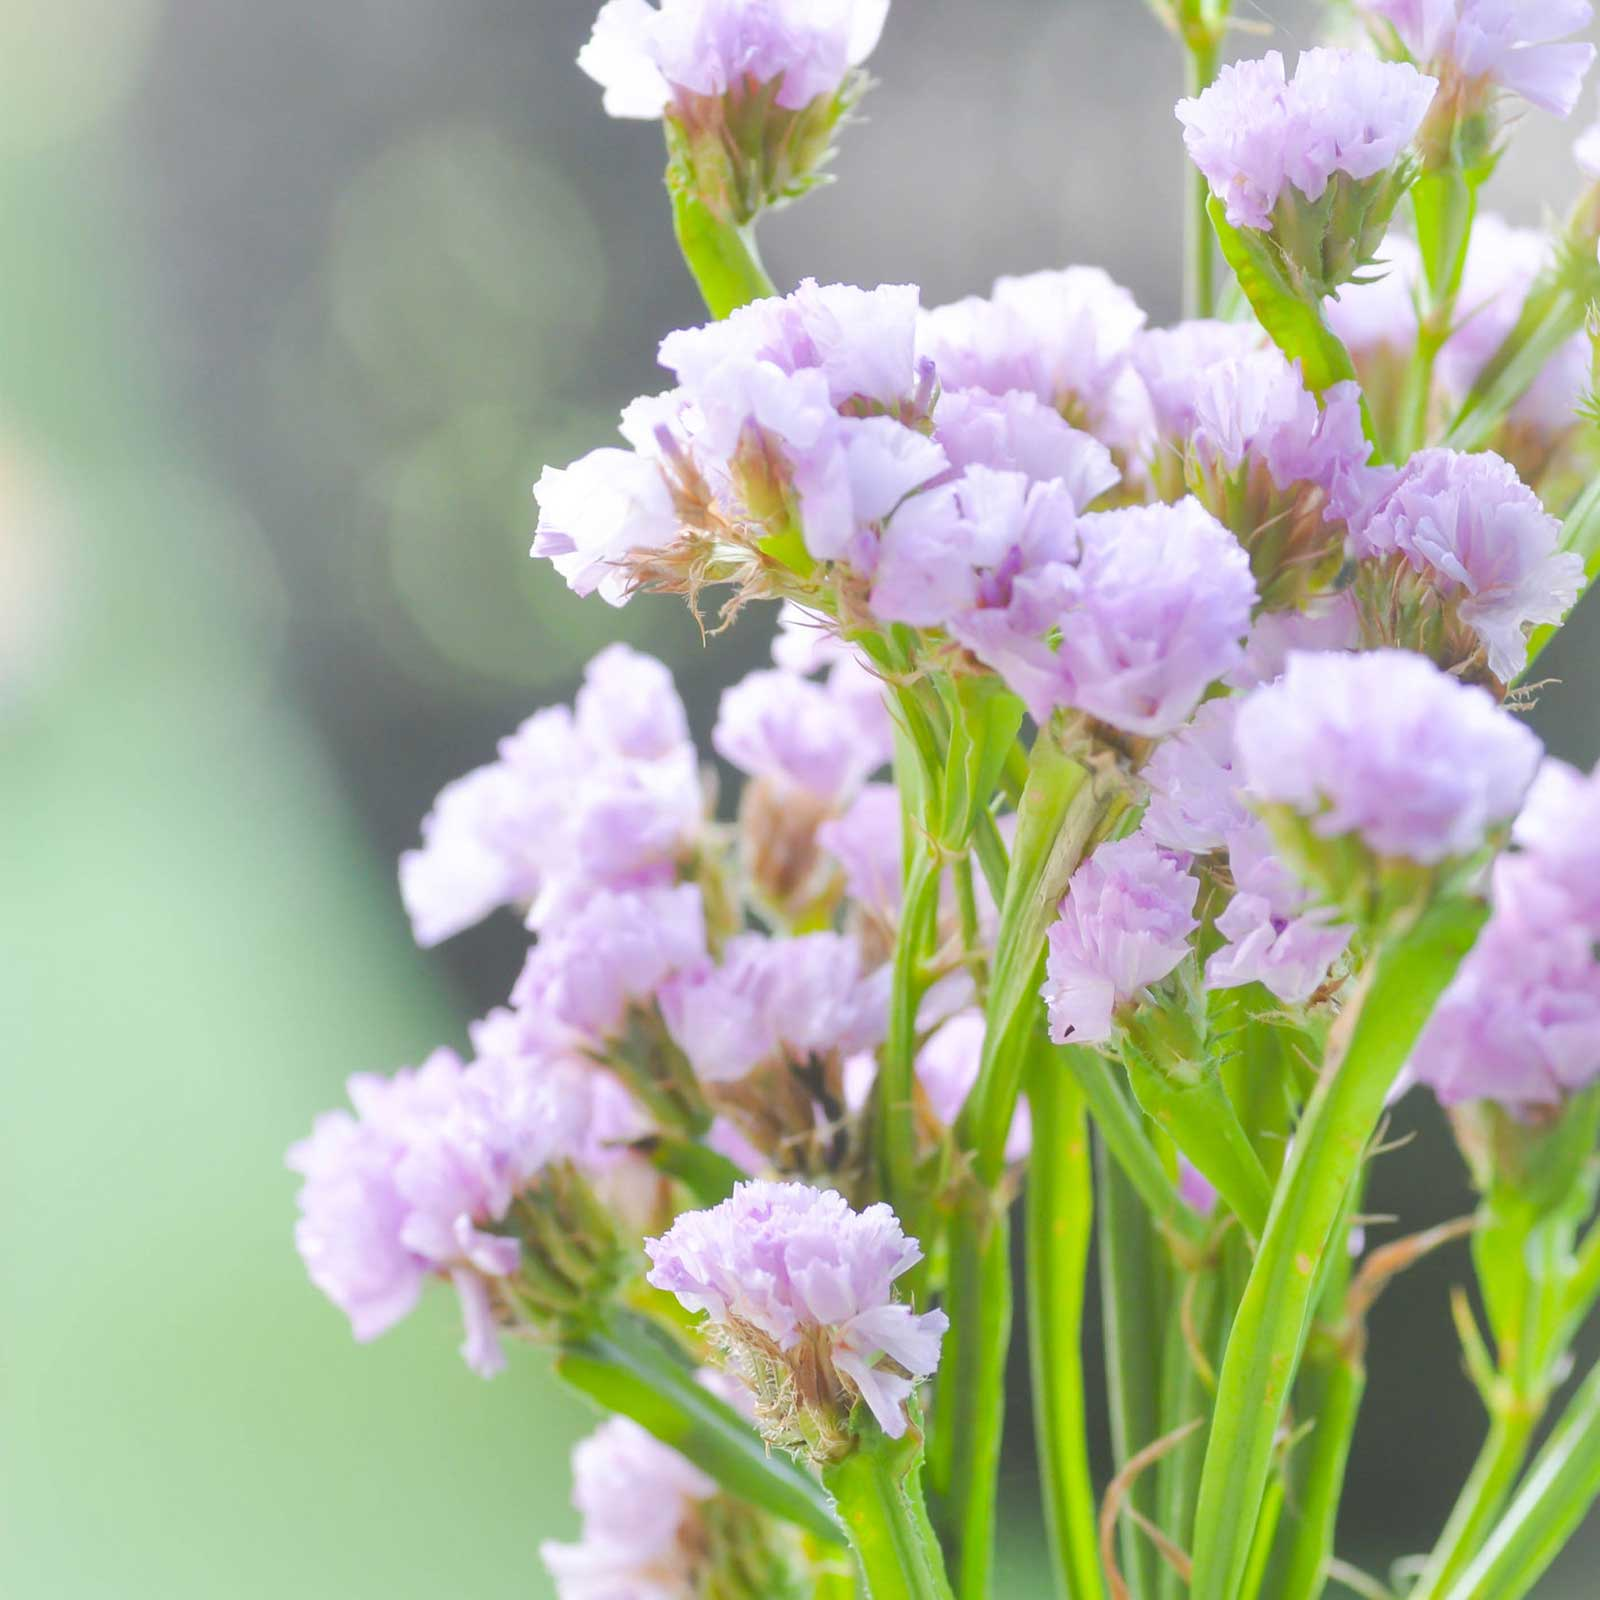 Statice Flower Garden Seeds - QIS Series - Color Mix - 1000 Seeds - Annual Flower Gardening Seed - Limonium sinuata